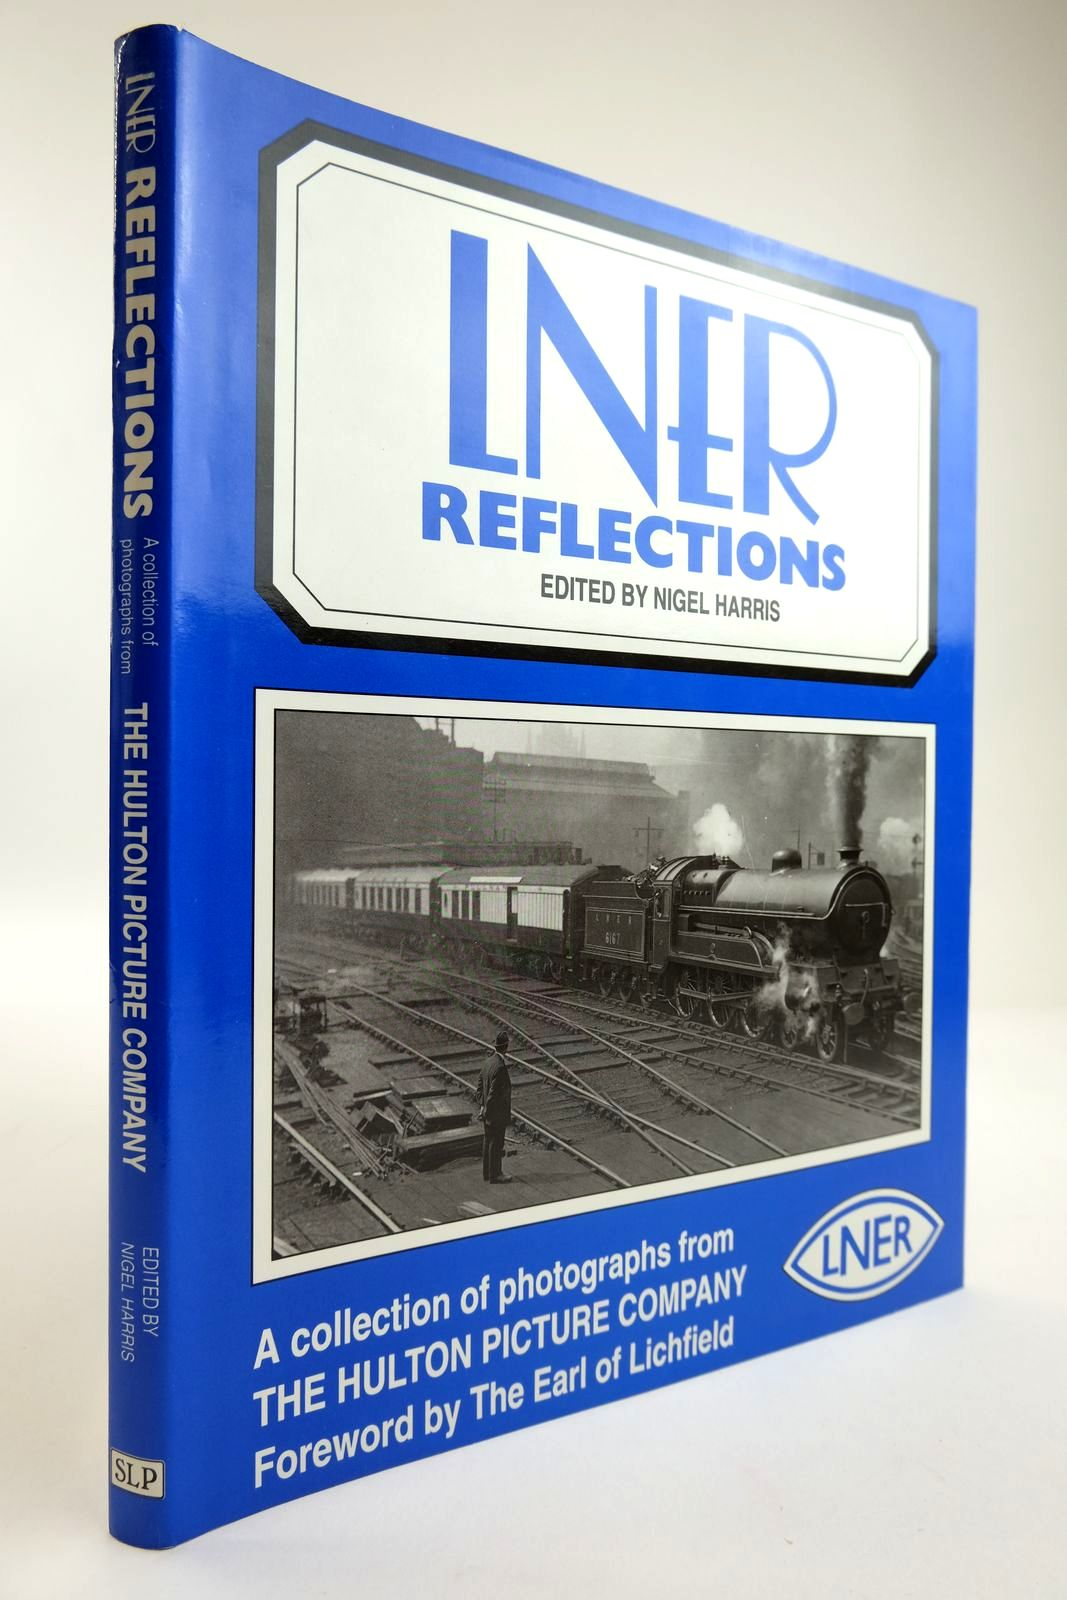 Photo of LNER REFLECTIONS written by Harris, Nigel published by Silver Link Publishing (STOCK CODE: 2133832)  for sale by Stella & Rose's Books